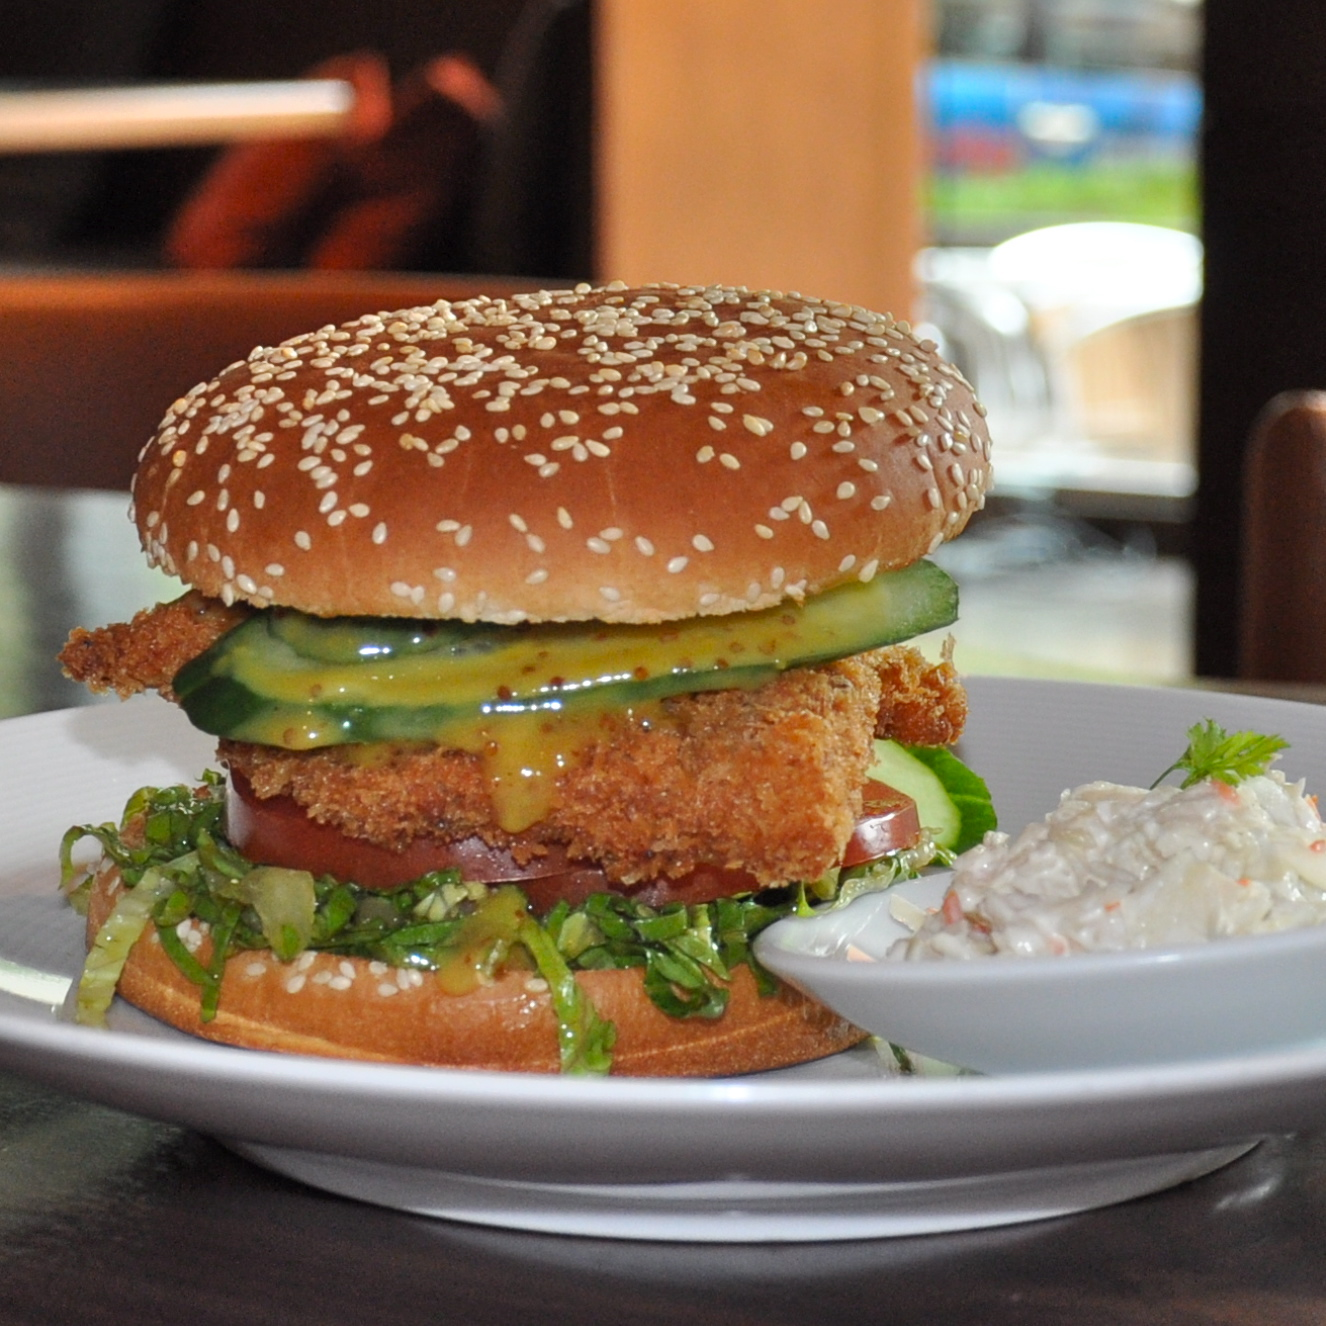 Tizian-Hyatt-Burger-essen-Chicken